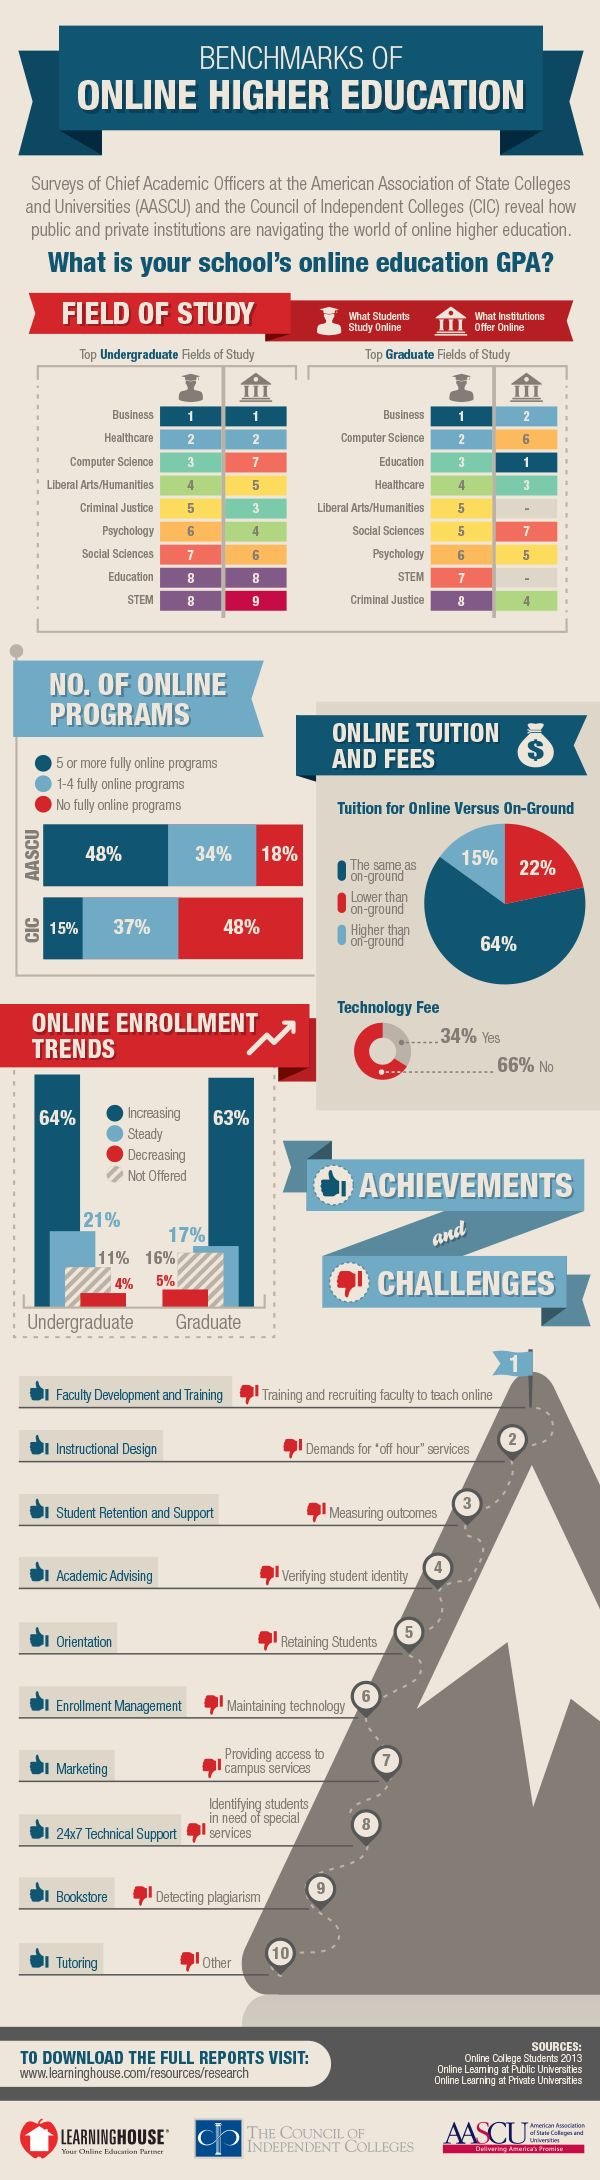 Benchmarks of Online Higher Education – Infographic